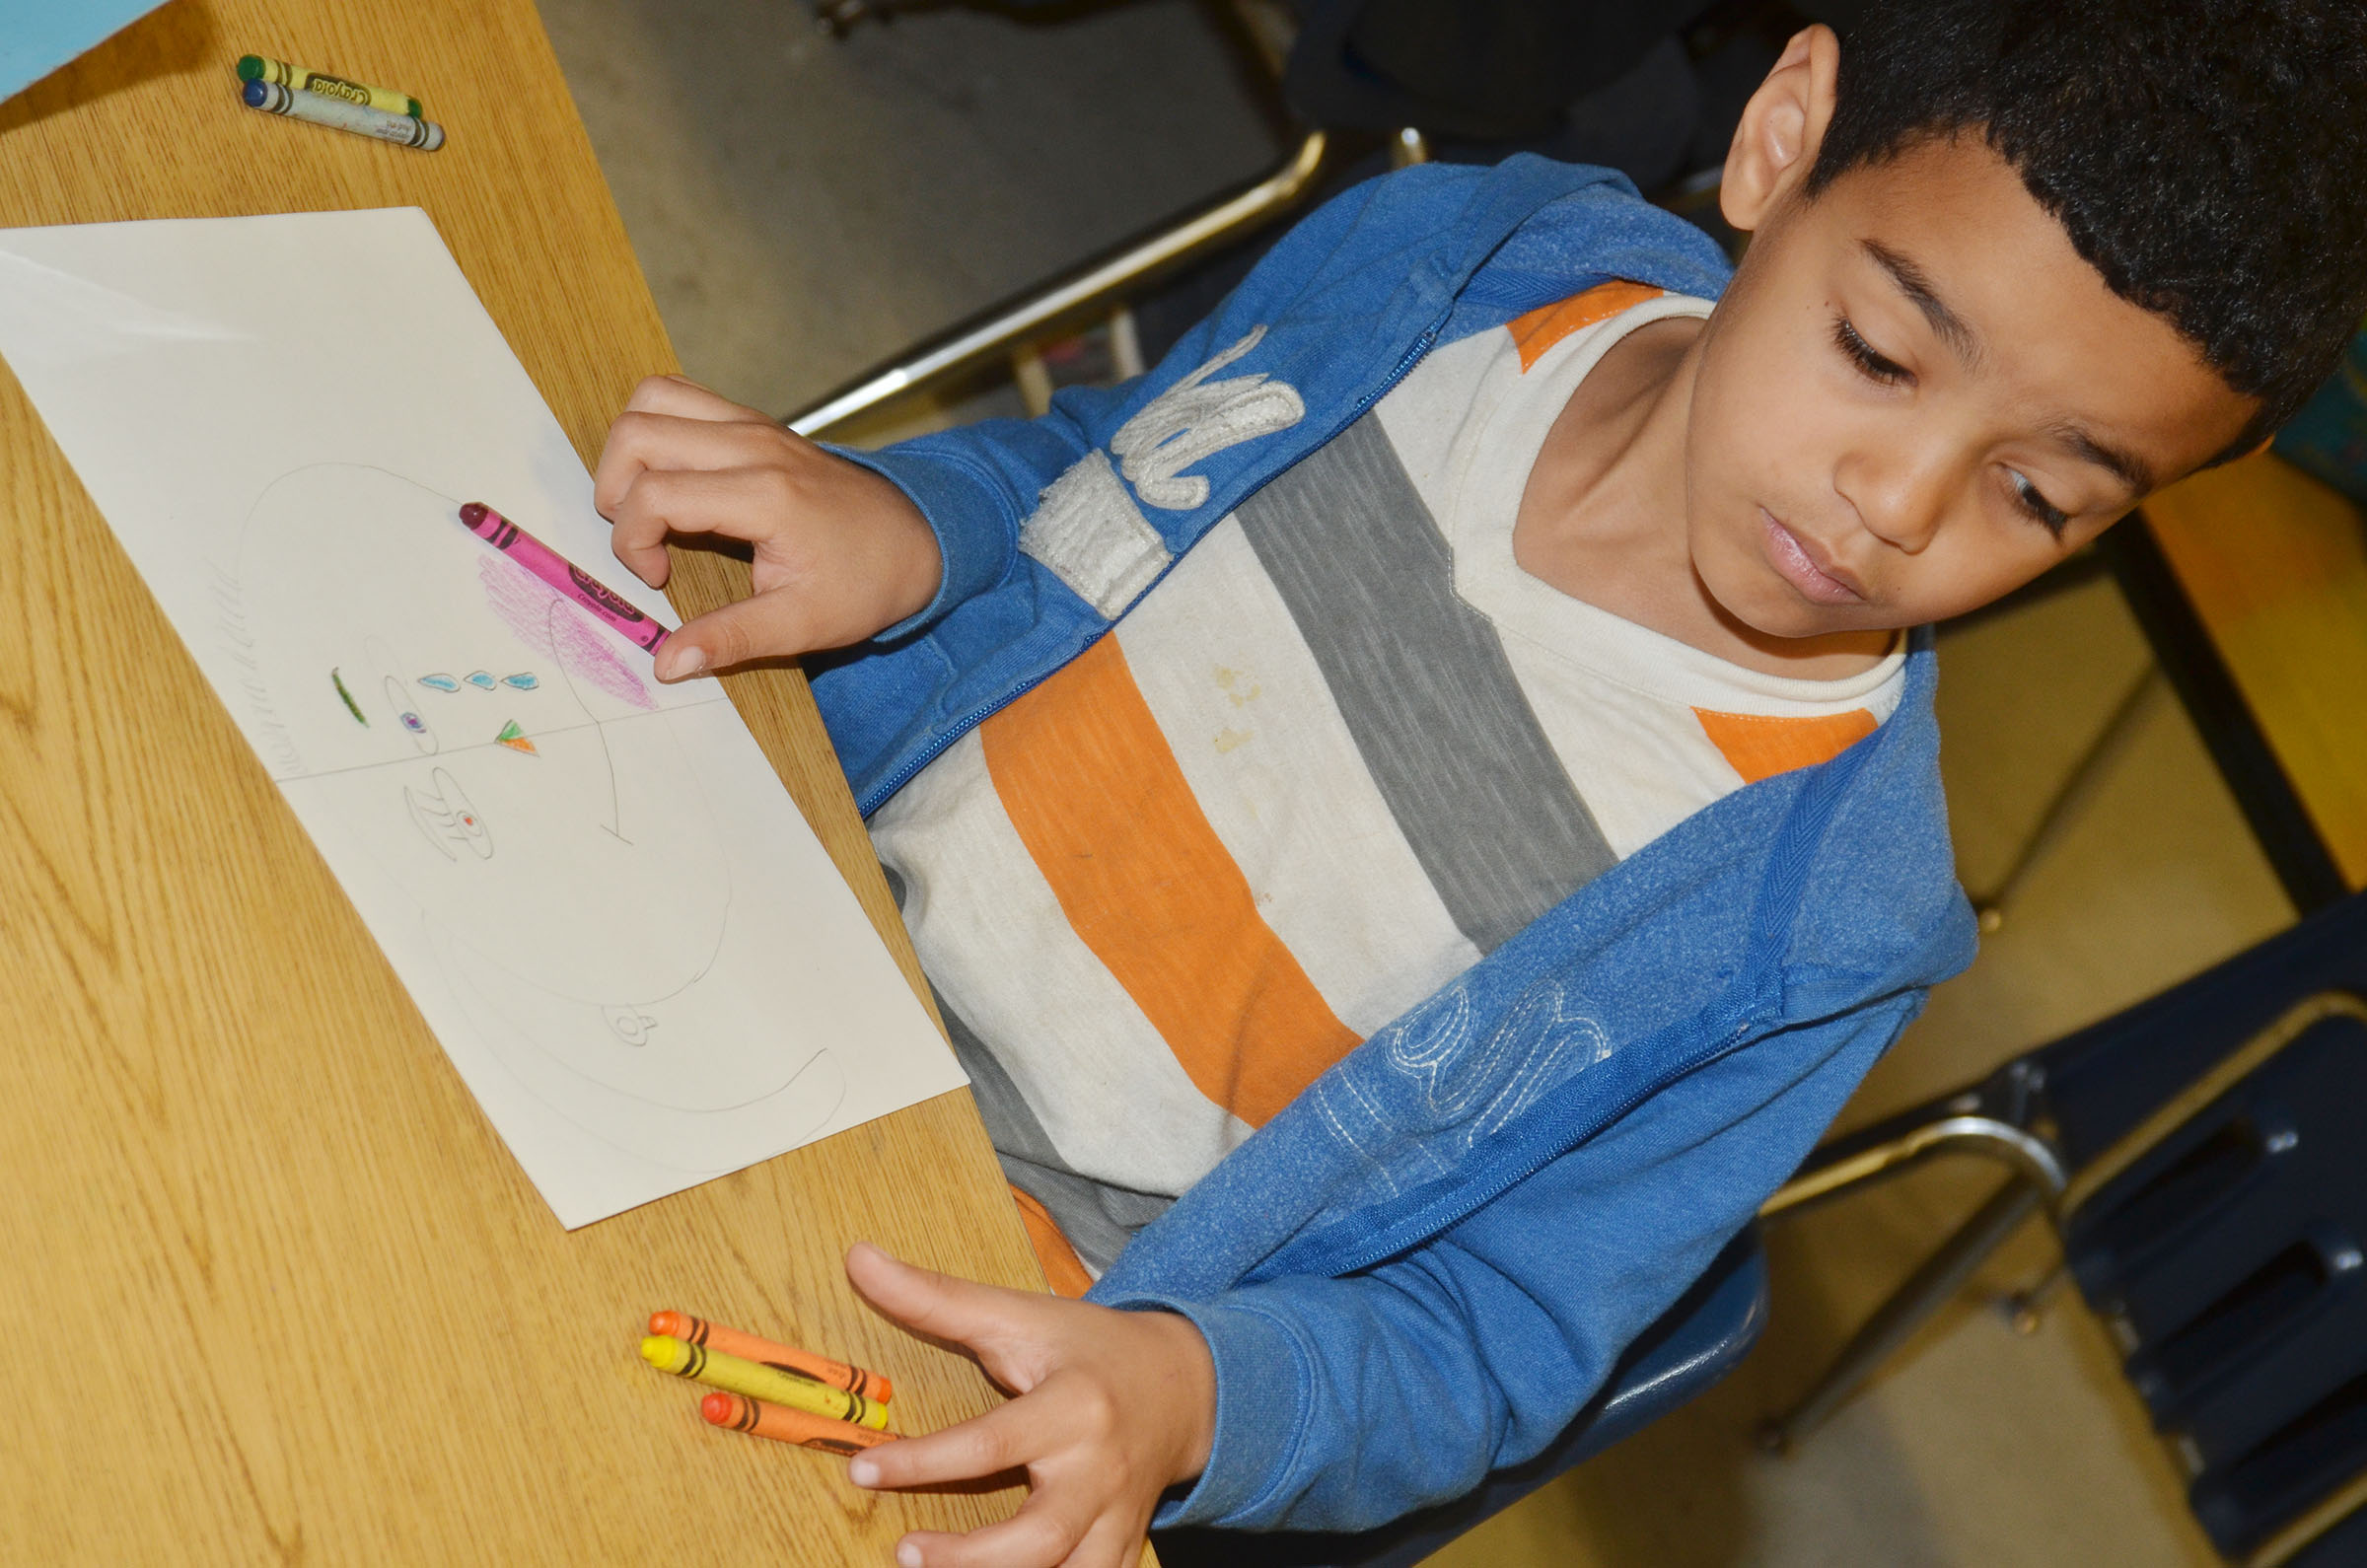 CES second-grader Leshawn Hamilton colors his warm and cool color face.